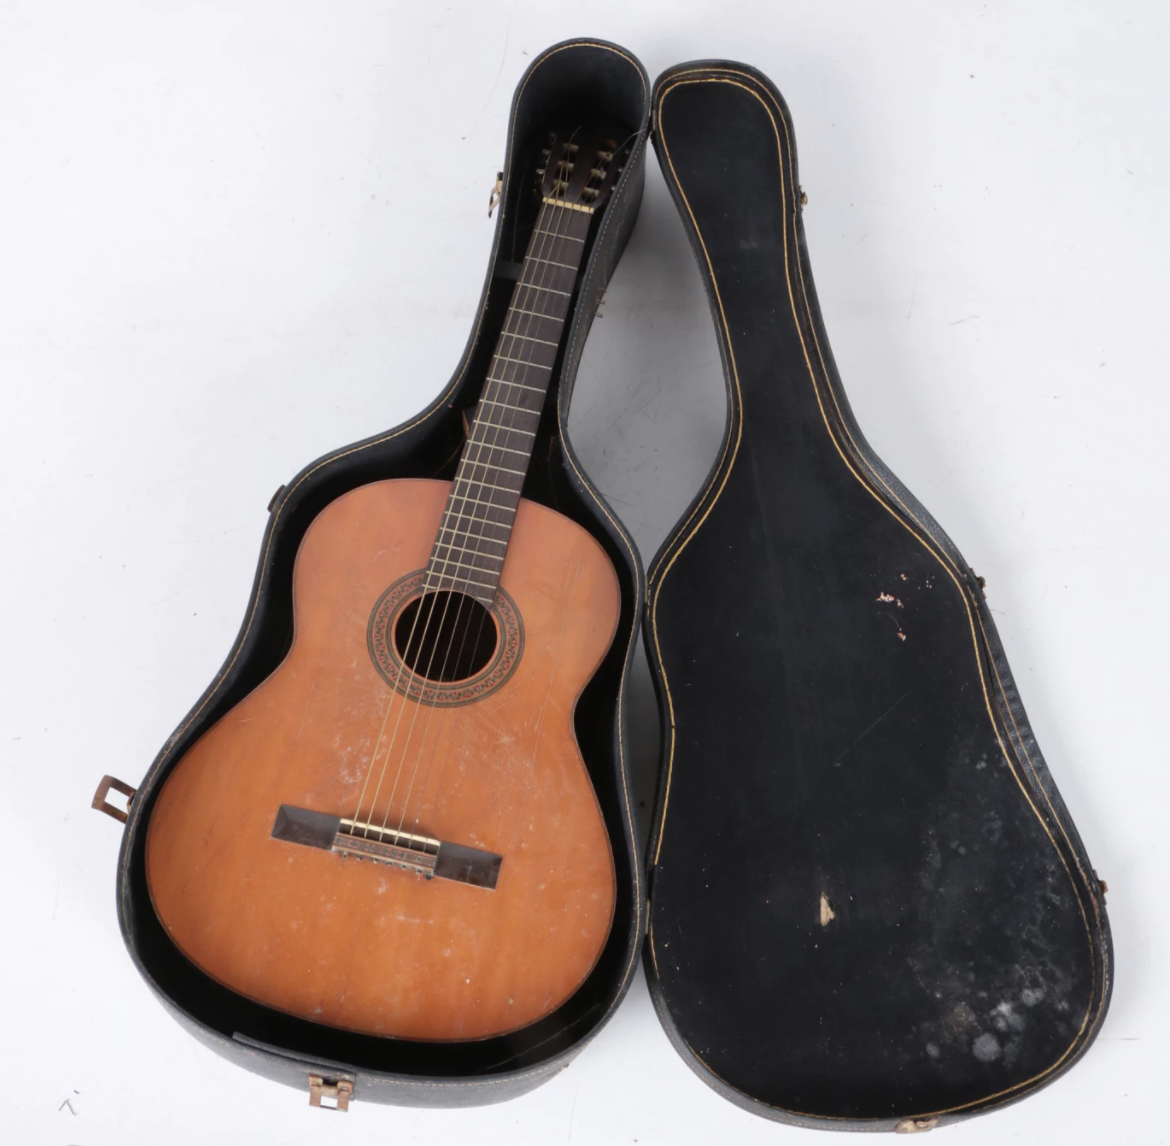 Vintage Yamaha G-85A Acoustic Guitar. Current Bid Price $42.